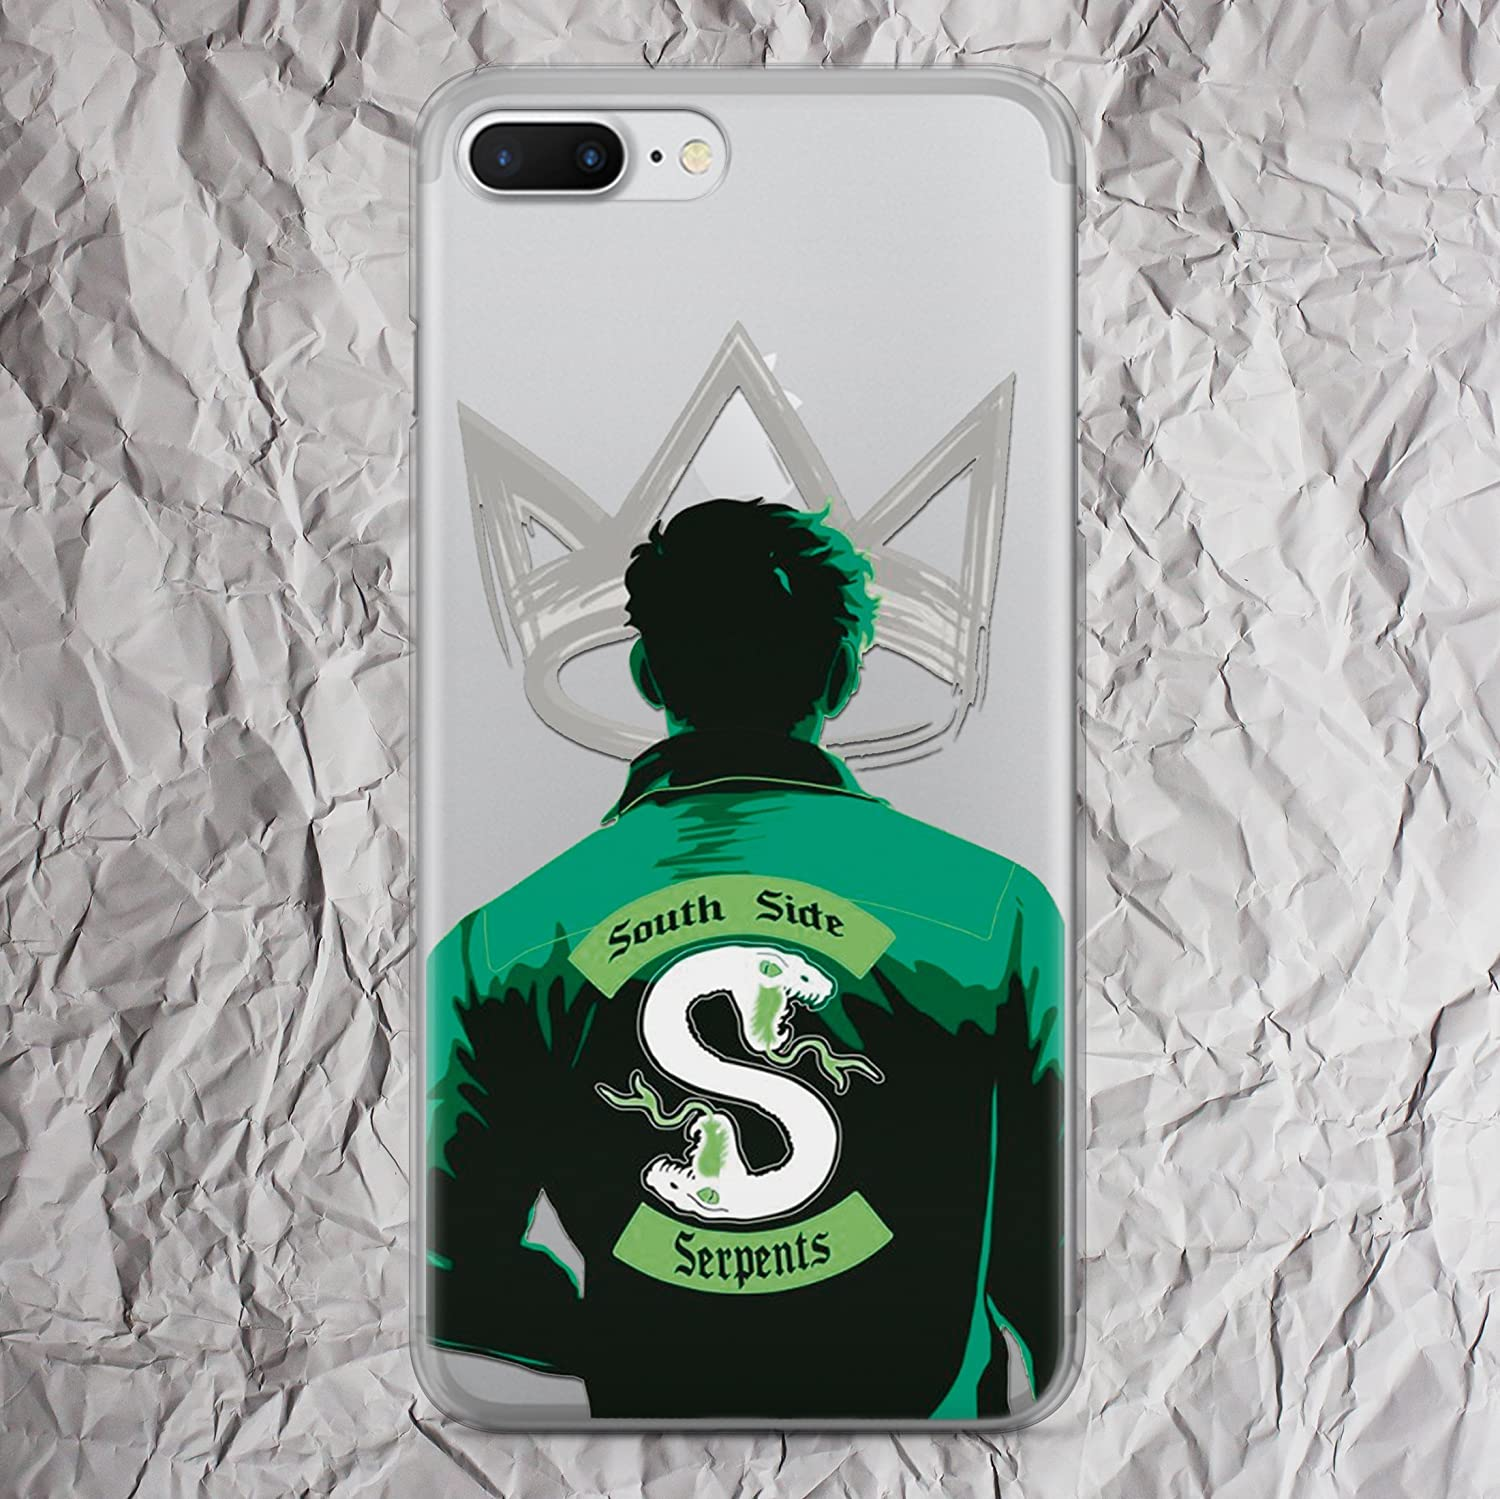 Riverdale Phone Case Jughead Jones Southside Serpents Jacket Shirt sweatshirt patch hoodie tshirt gifts print iPhone 7 8 6 6s plus X case for iphone 5 5s se 5se 4 4s clear silicone or plastic cover